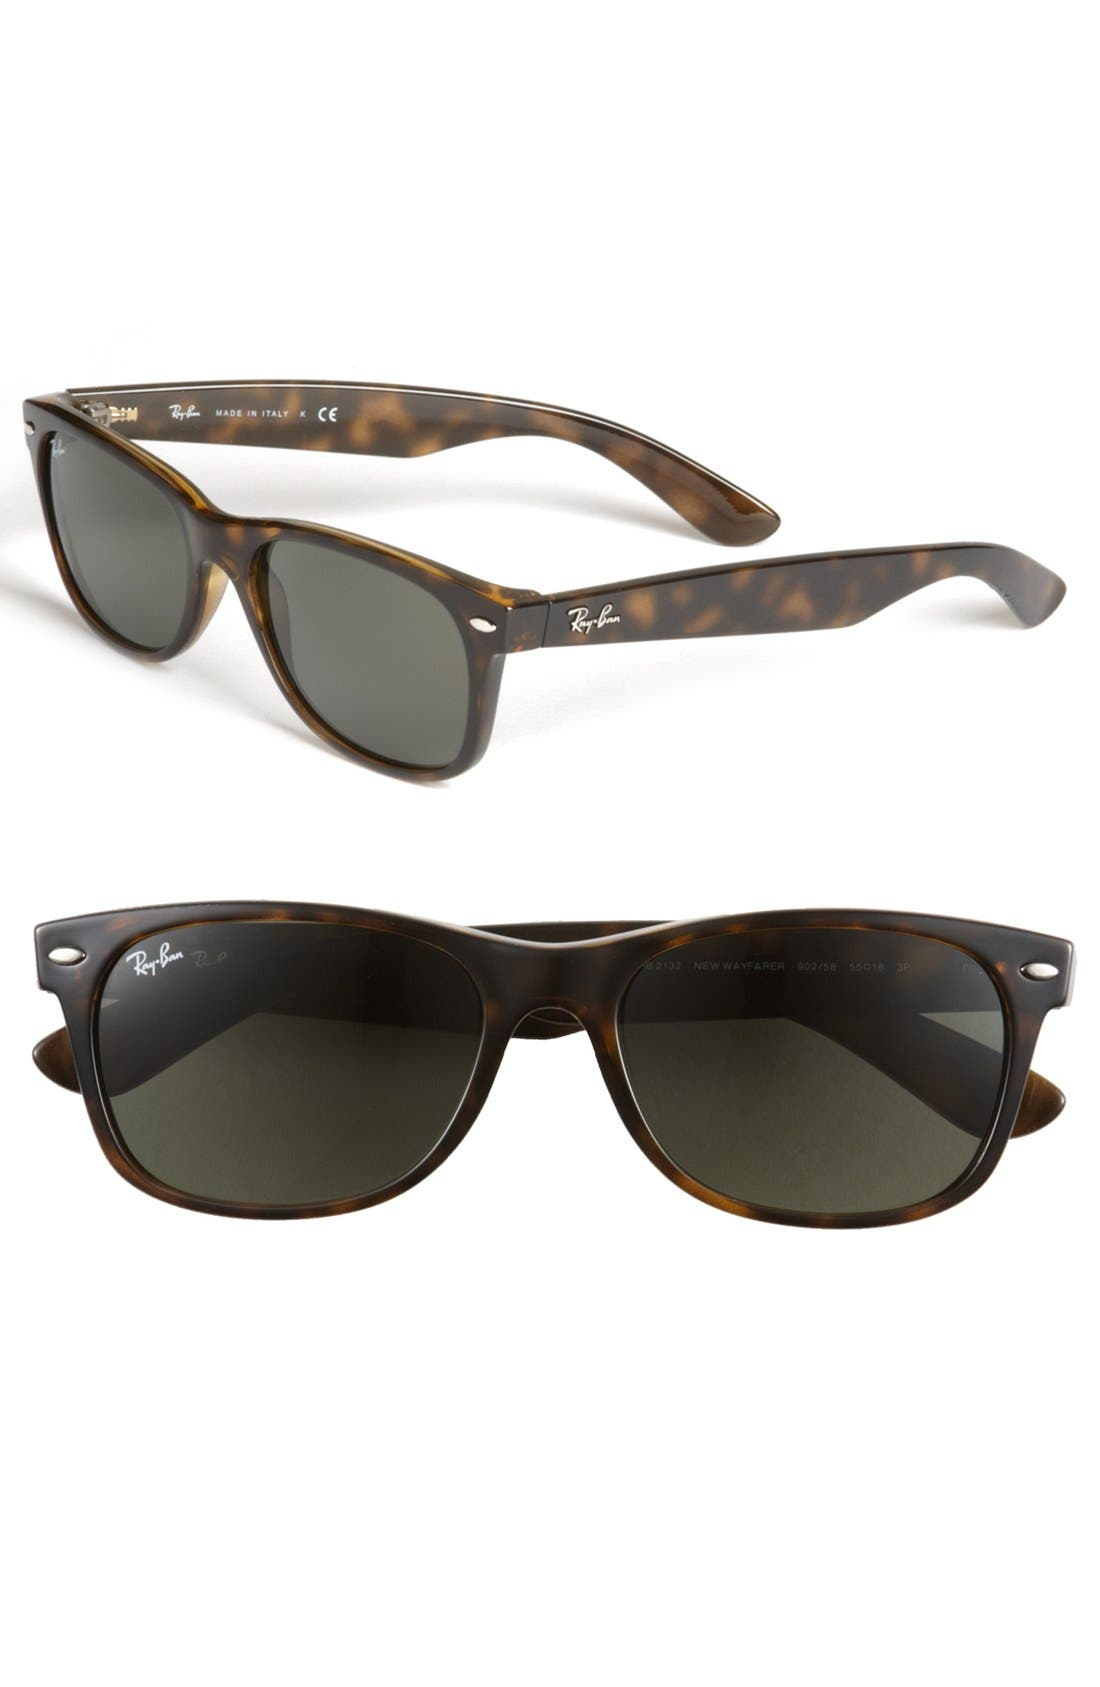 Alternate Image 1 Selected - Ray-Ban 'New Wayfarer' 55mm Sunglasses